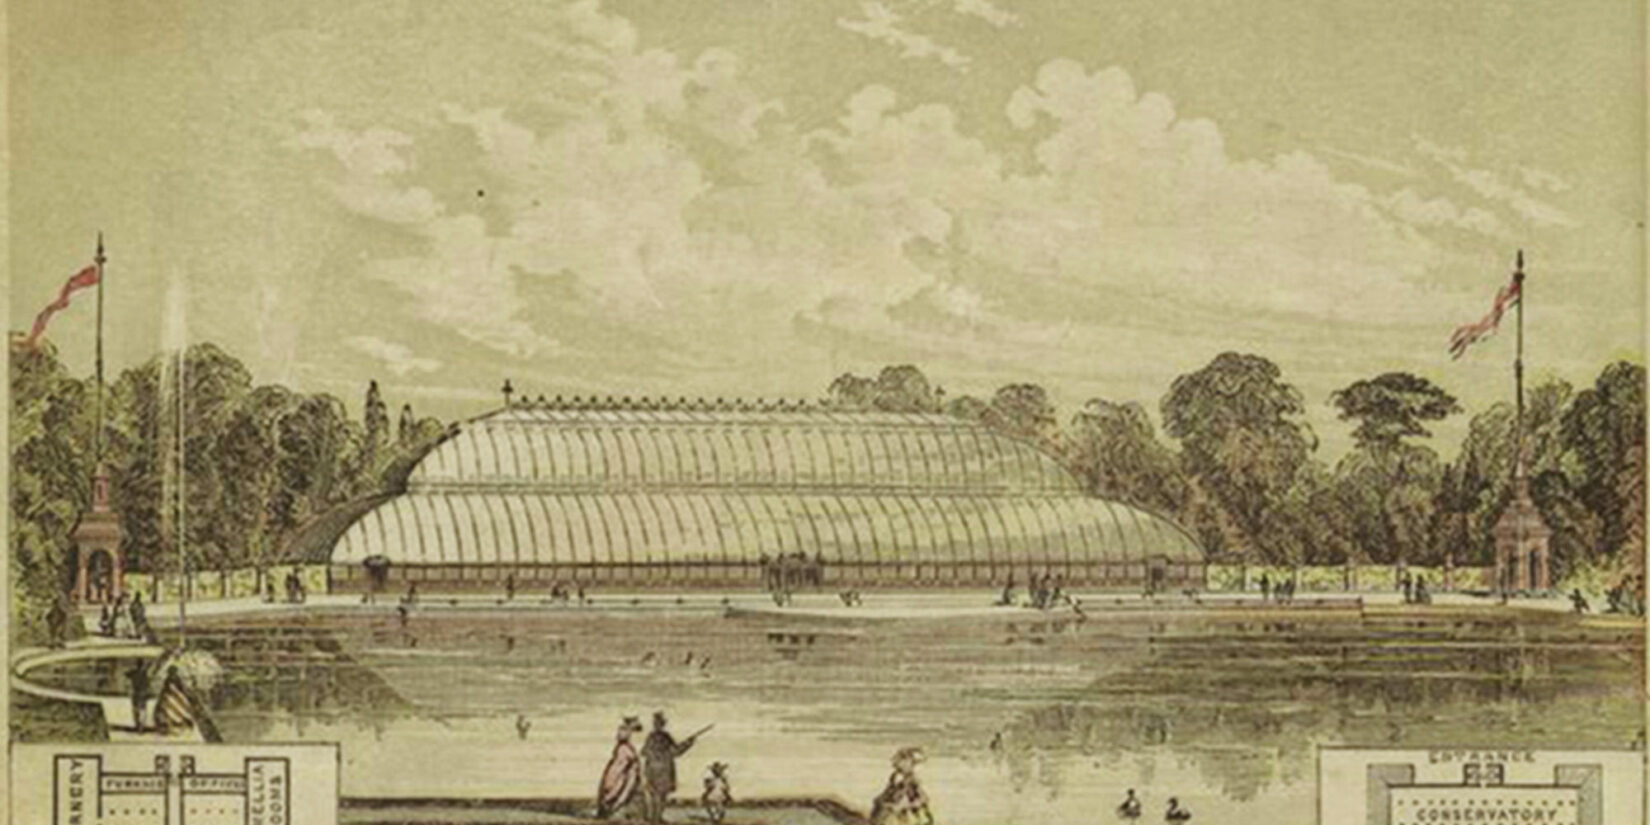 Contemporary rendering showing a large glass pavilion on the banks of a symmetric duck pond.